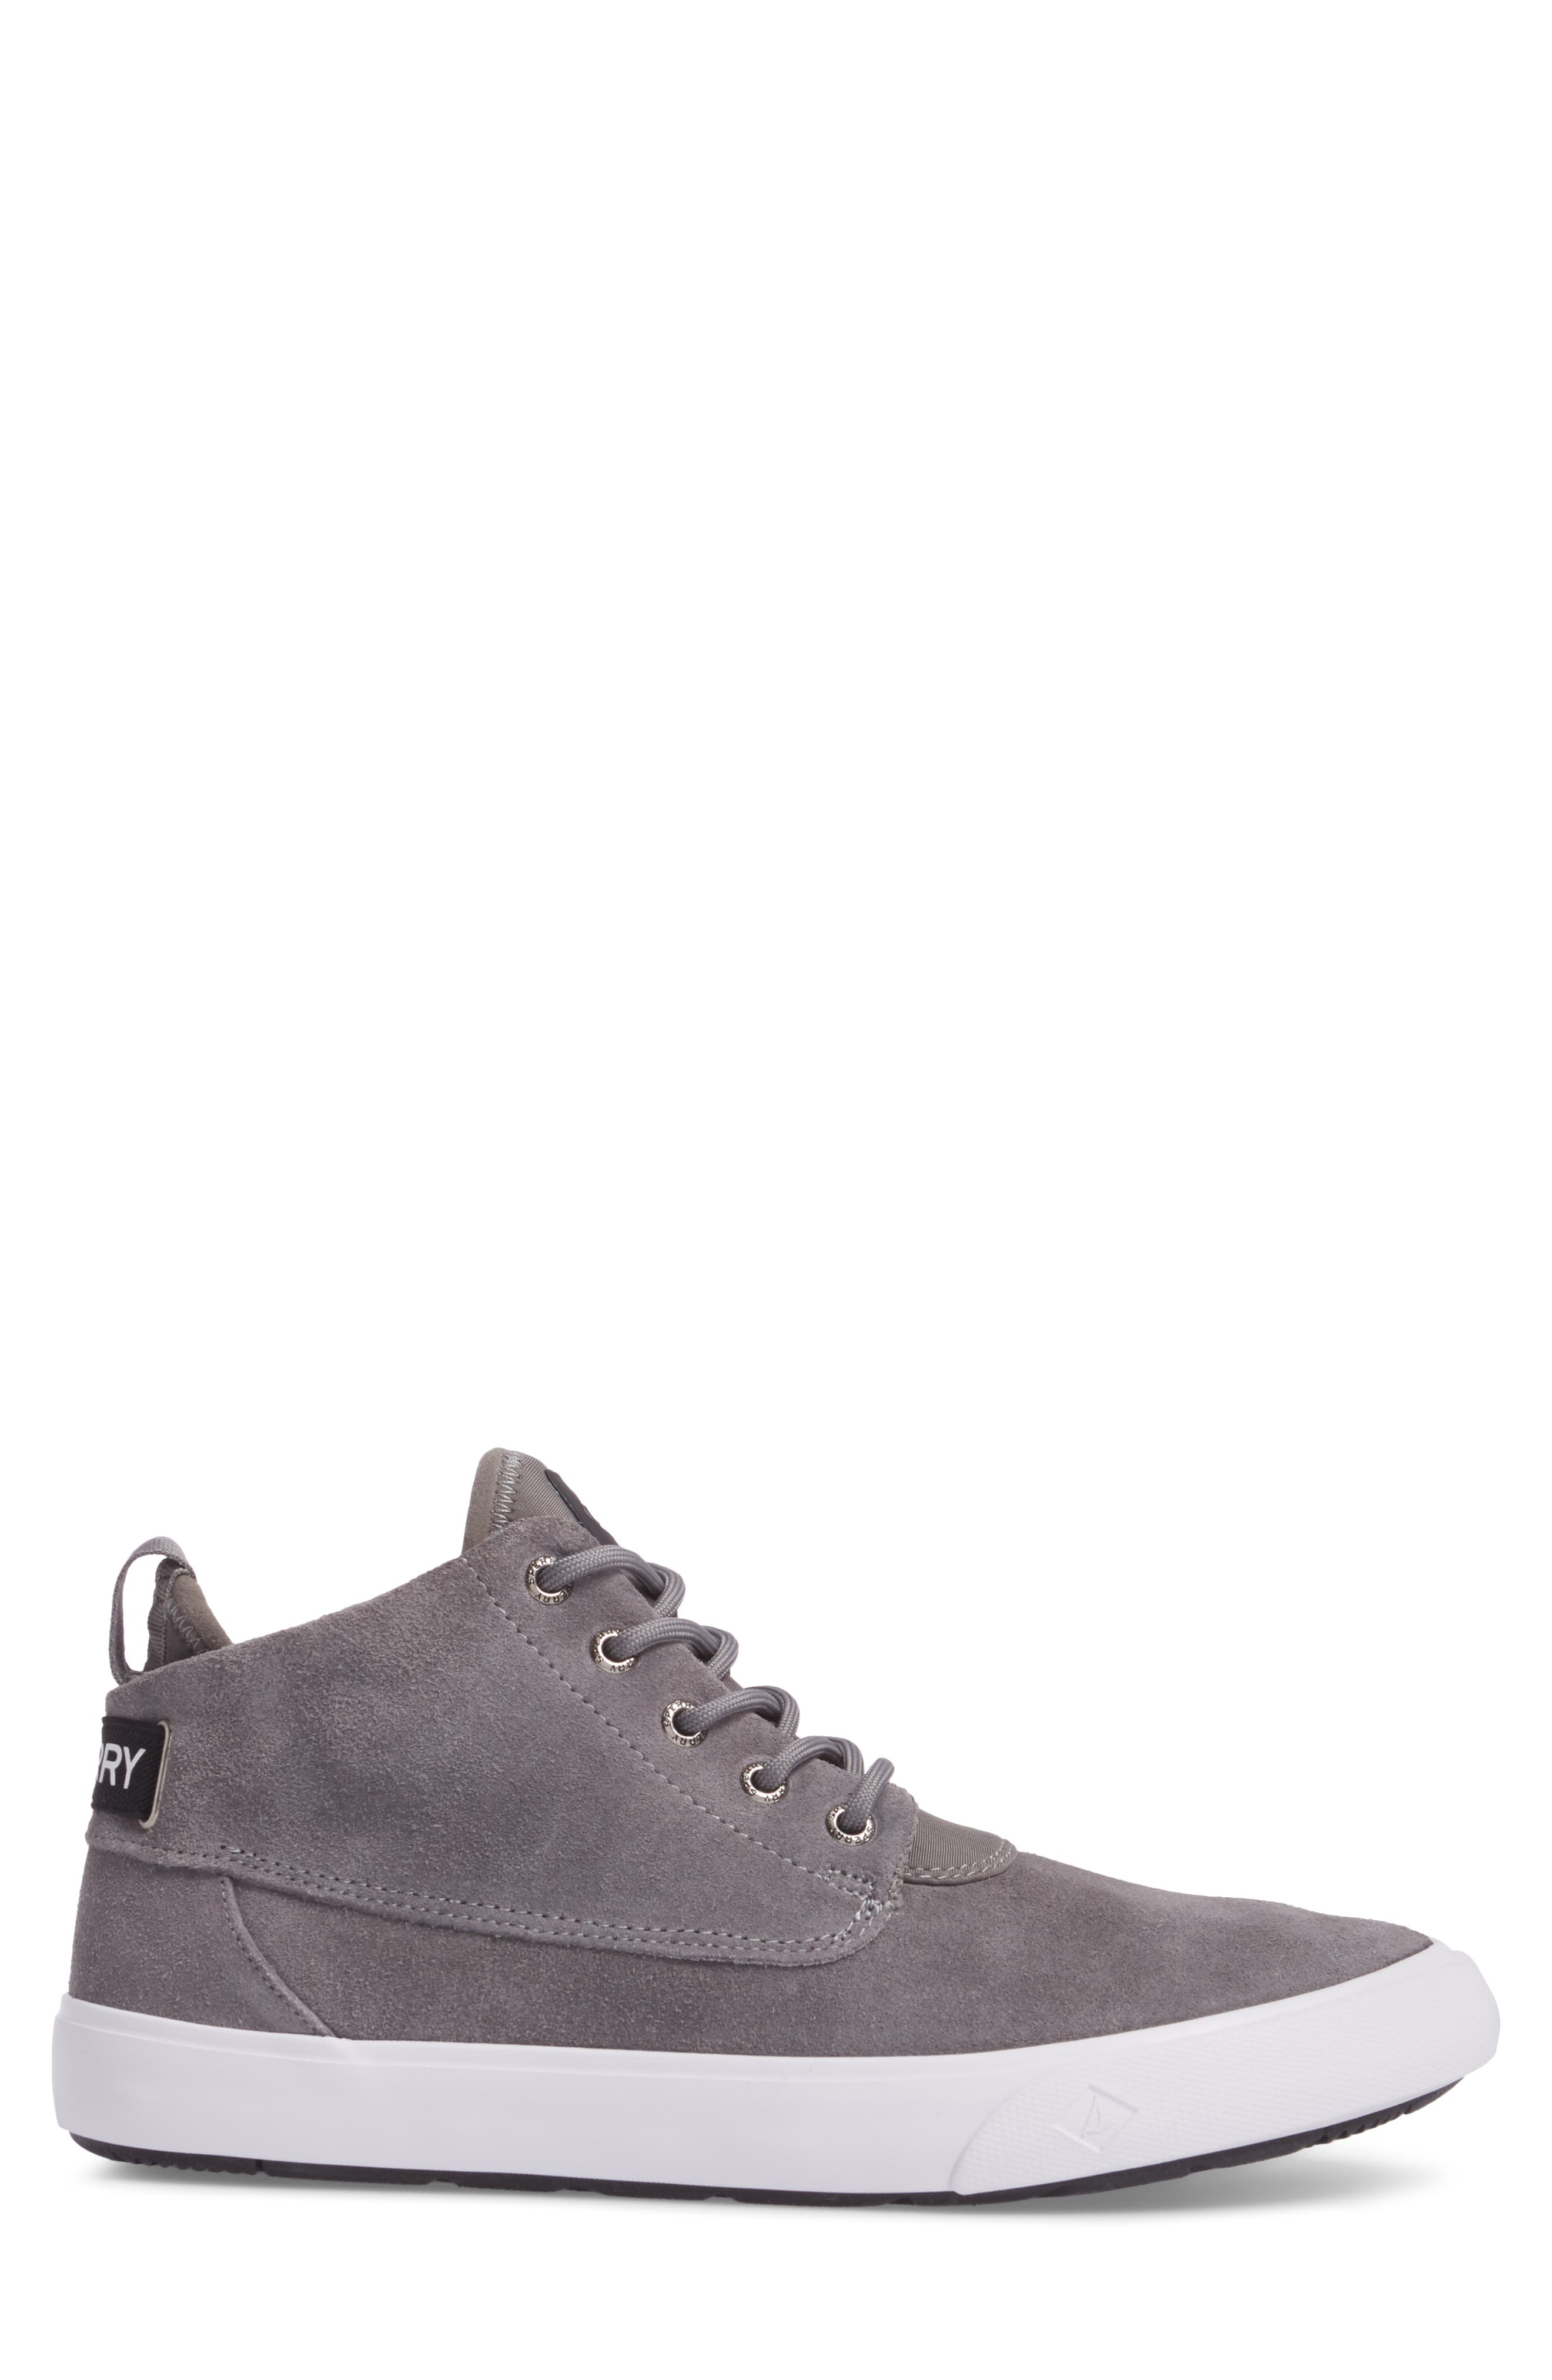 Cutwater Chukka Boot,                             Alternate thumbnail 6, color,